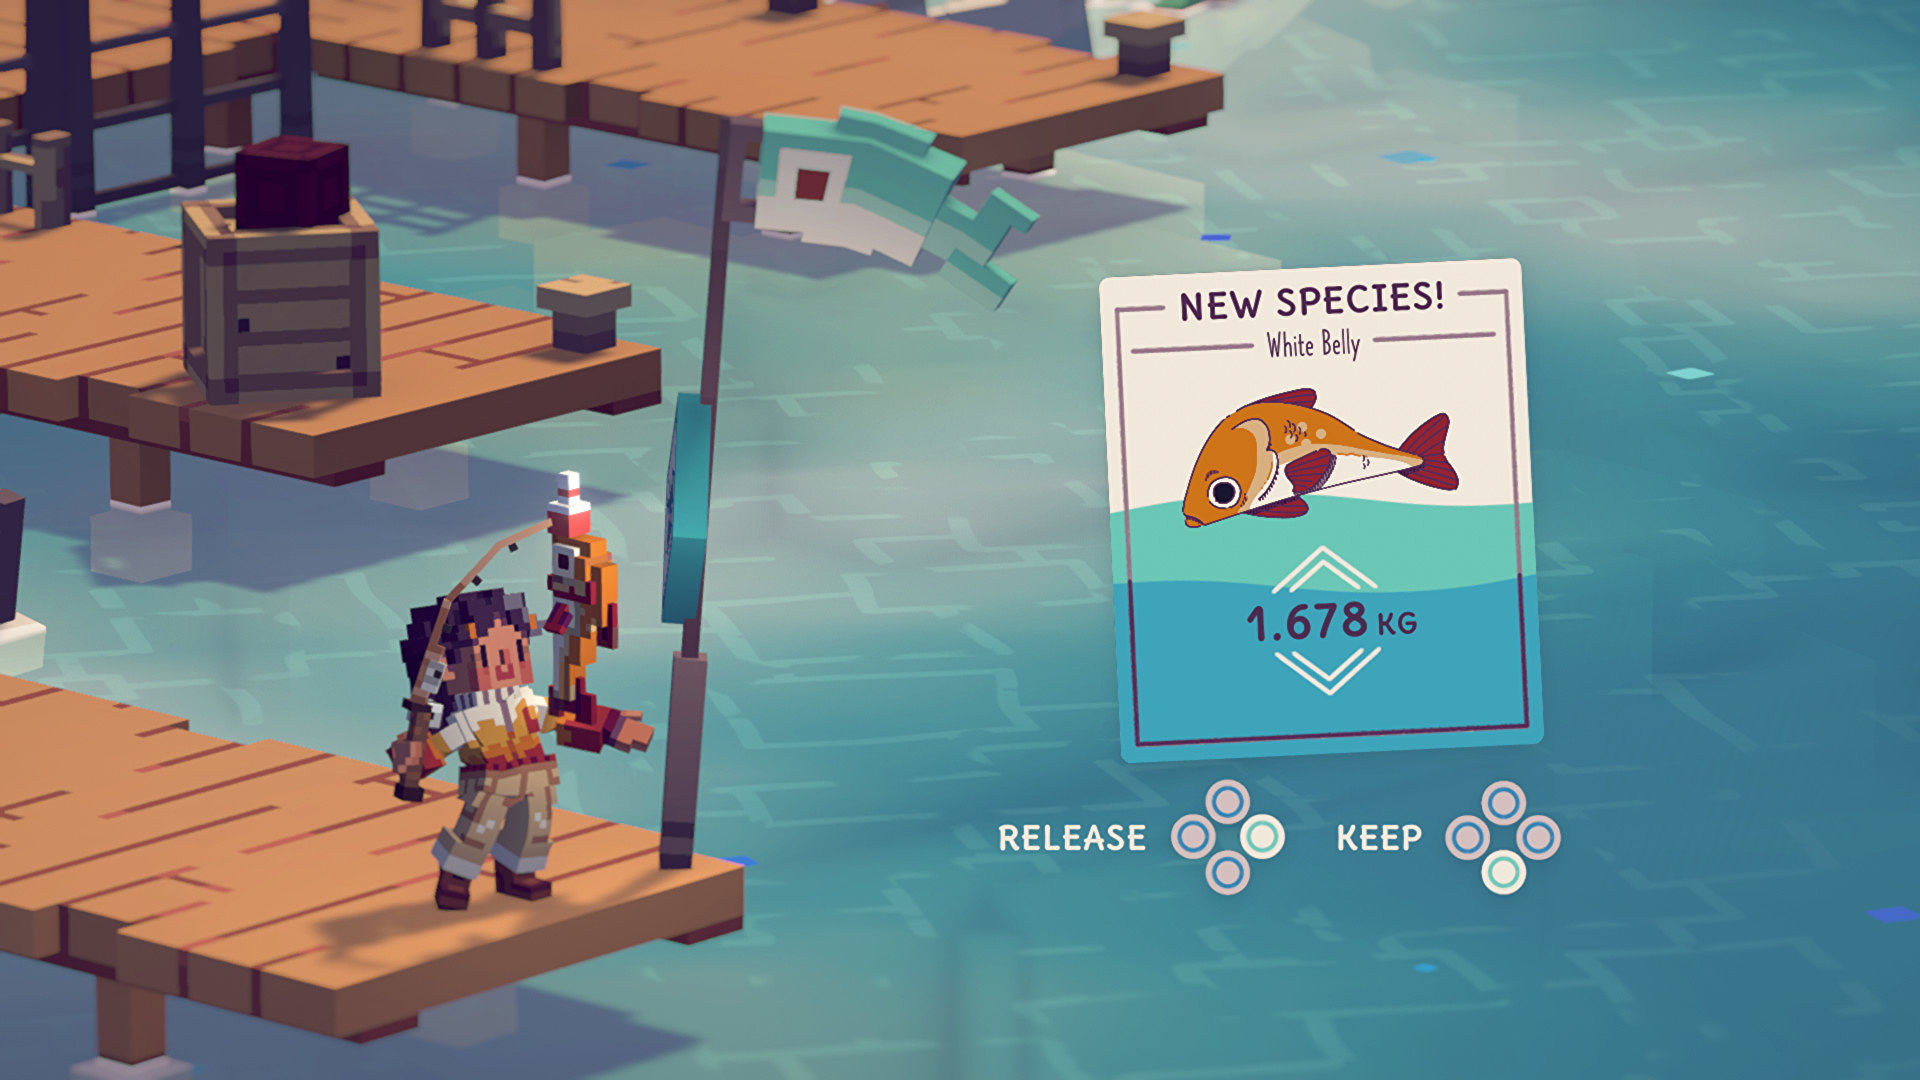 Moonglow Bay is a cute, slice-of-life fishing sim